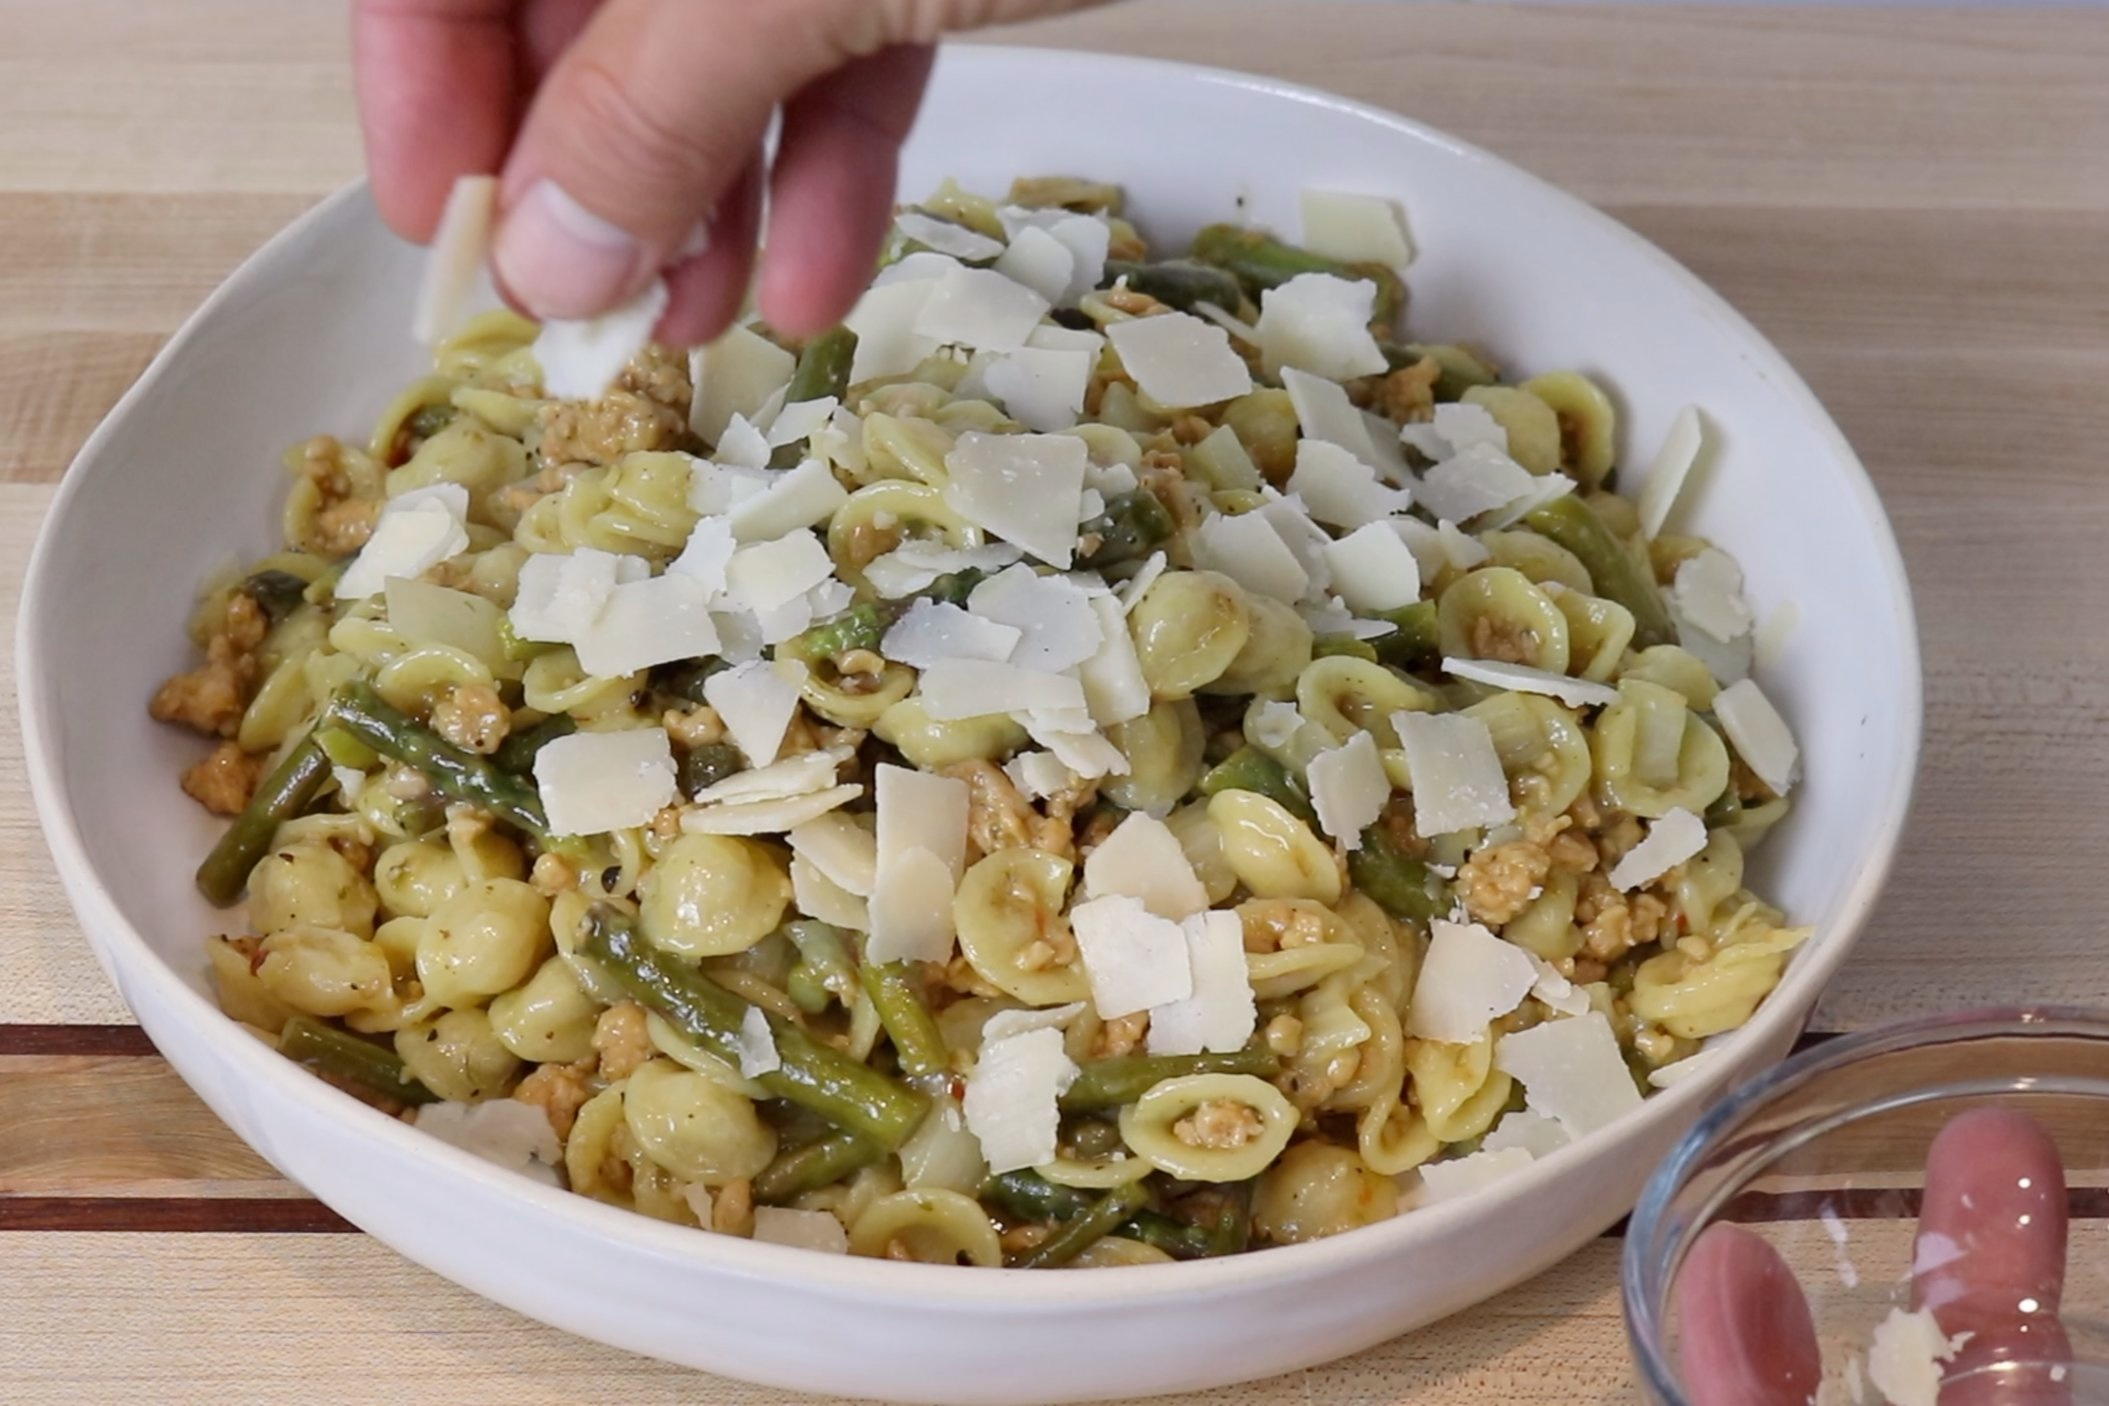 9. Remove from heat. Transfer to a serving dish and sprinkle with Pecorino Romano cheese. -